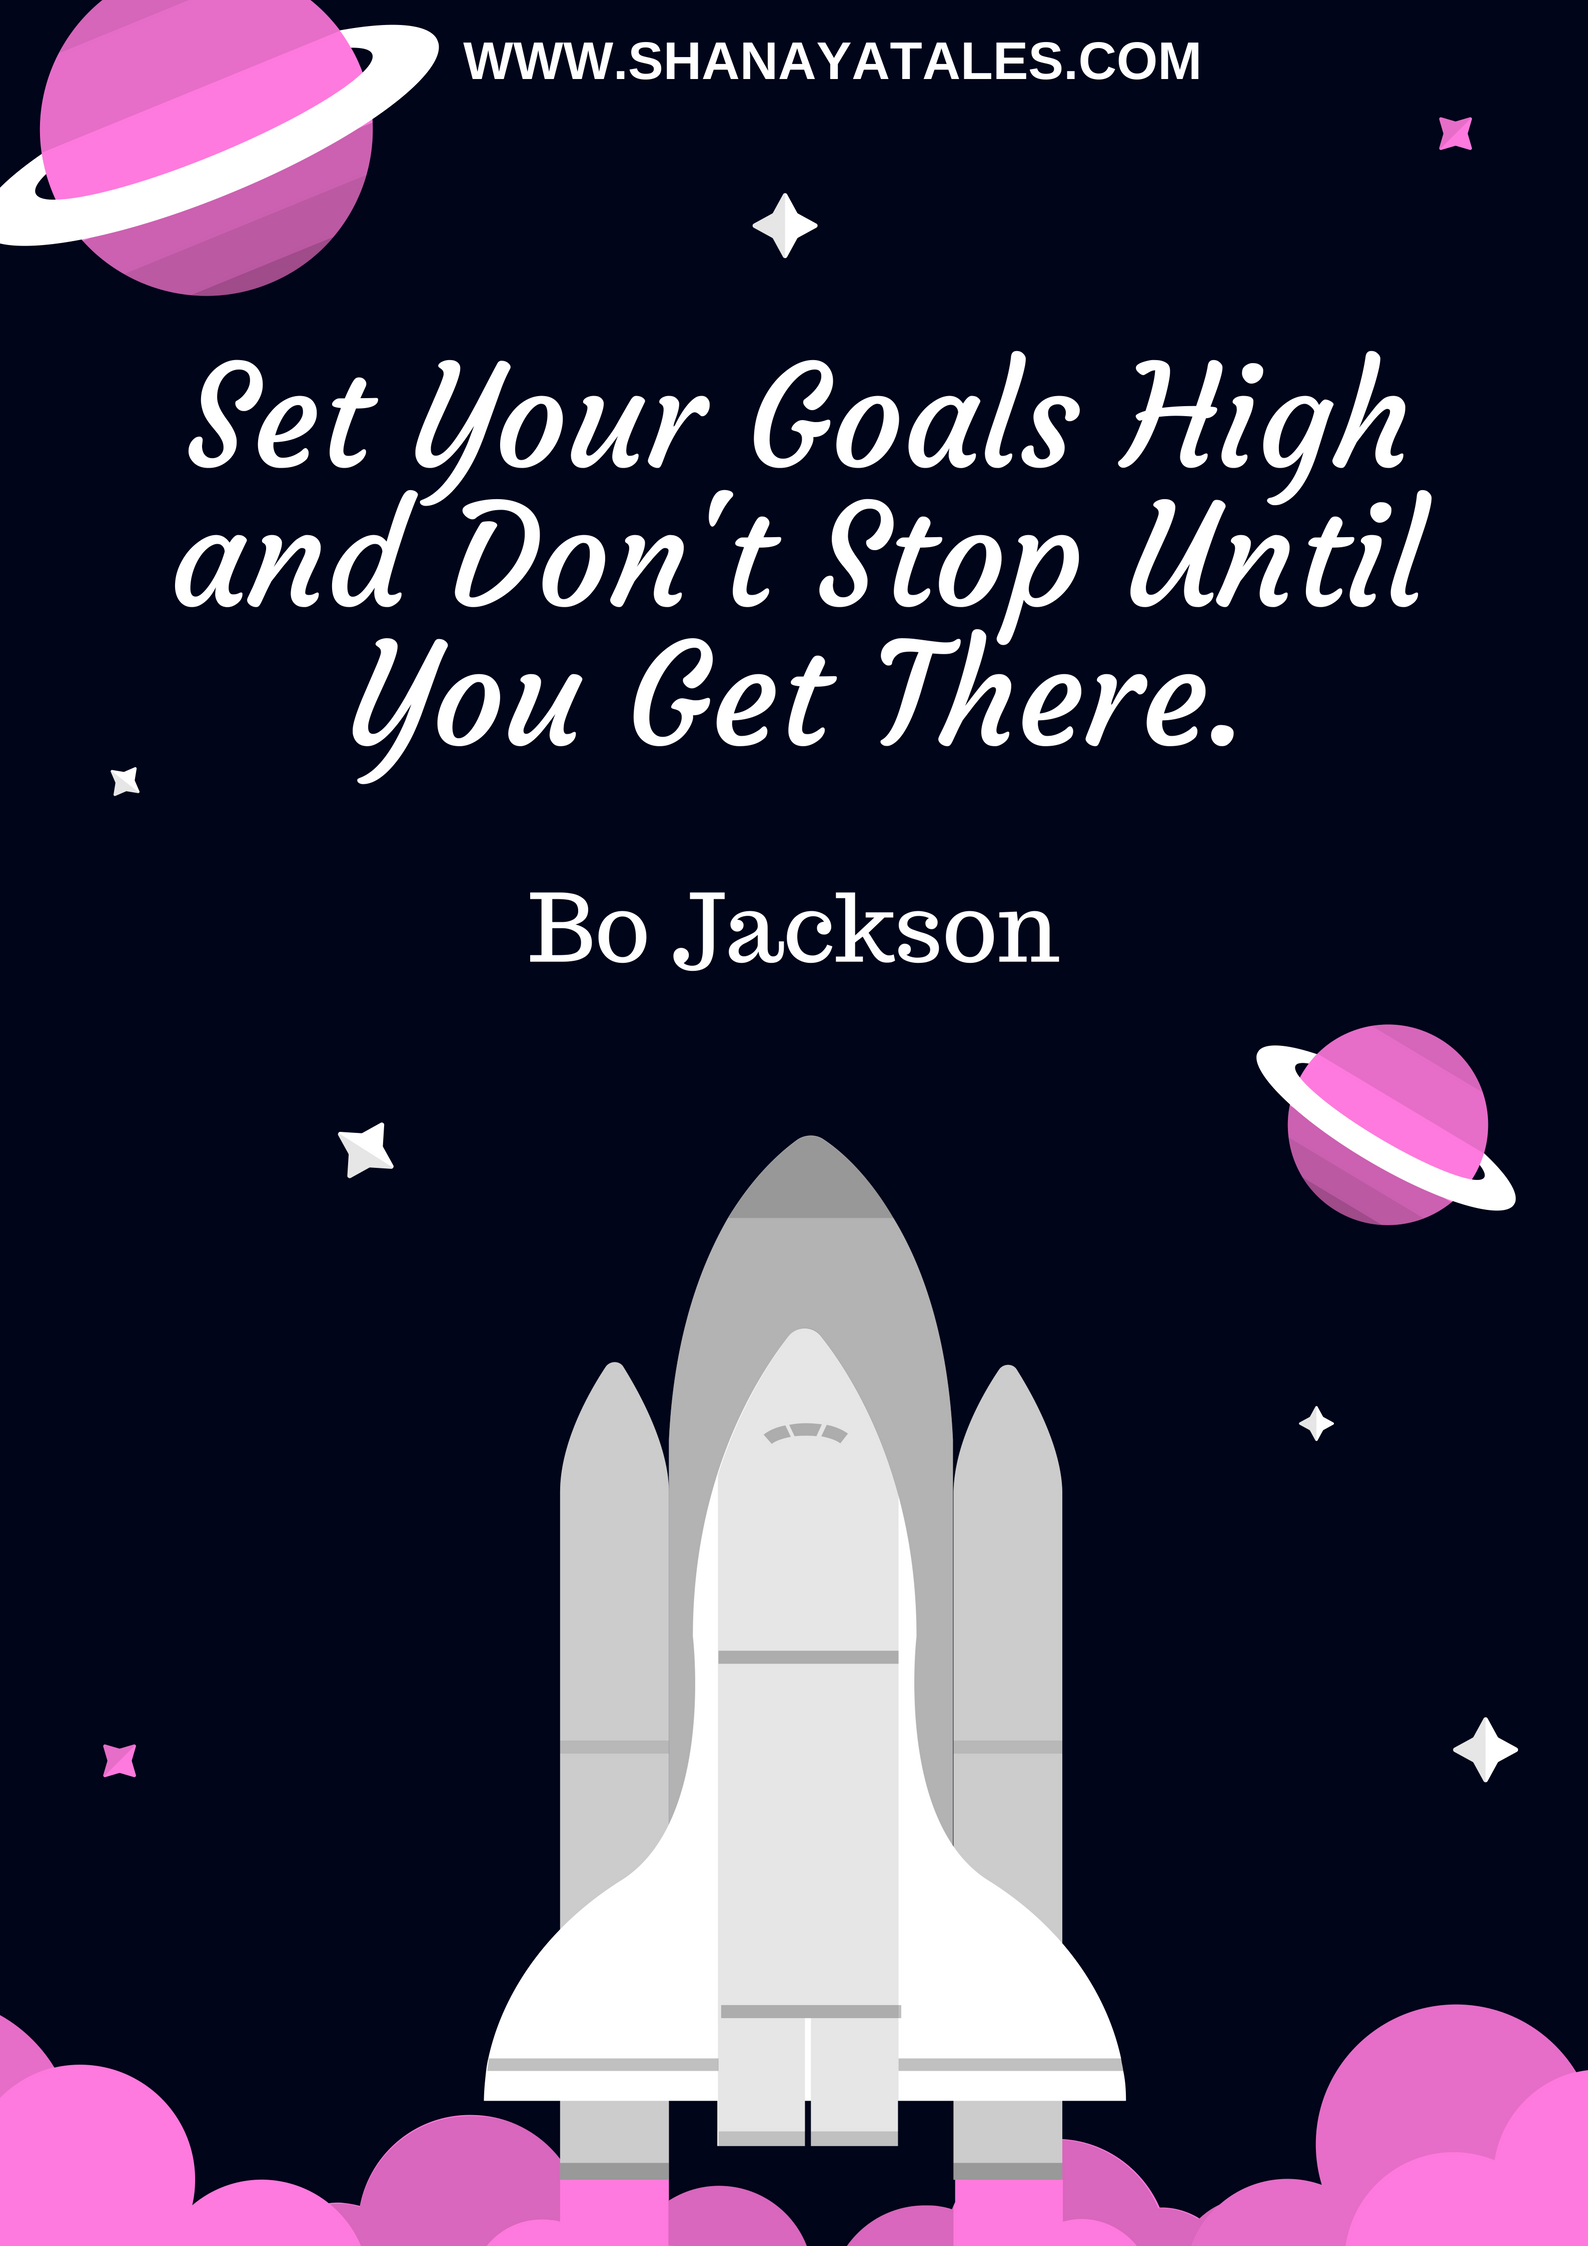 Set Your Goals High, and Don't Stop Until You Get There.